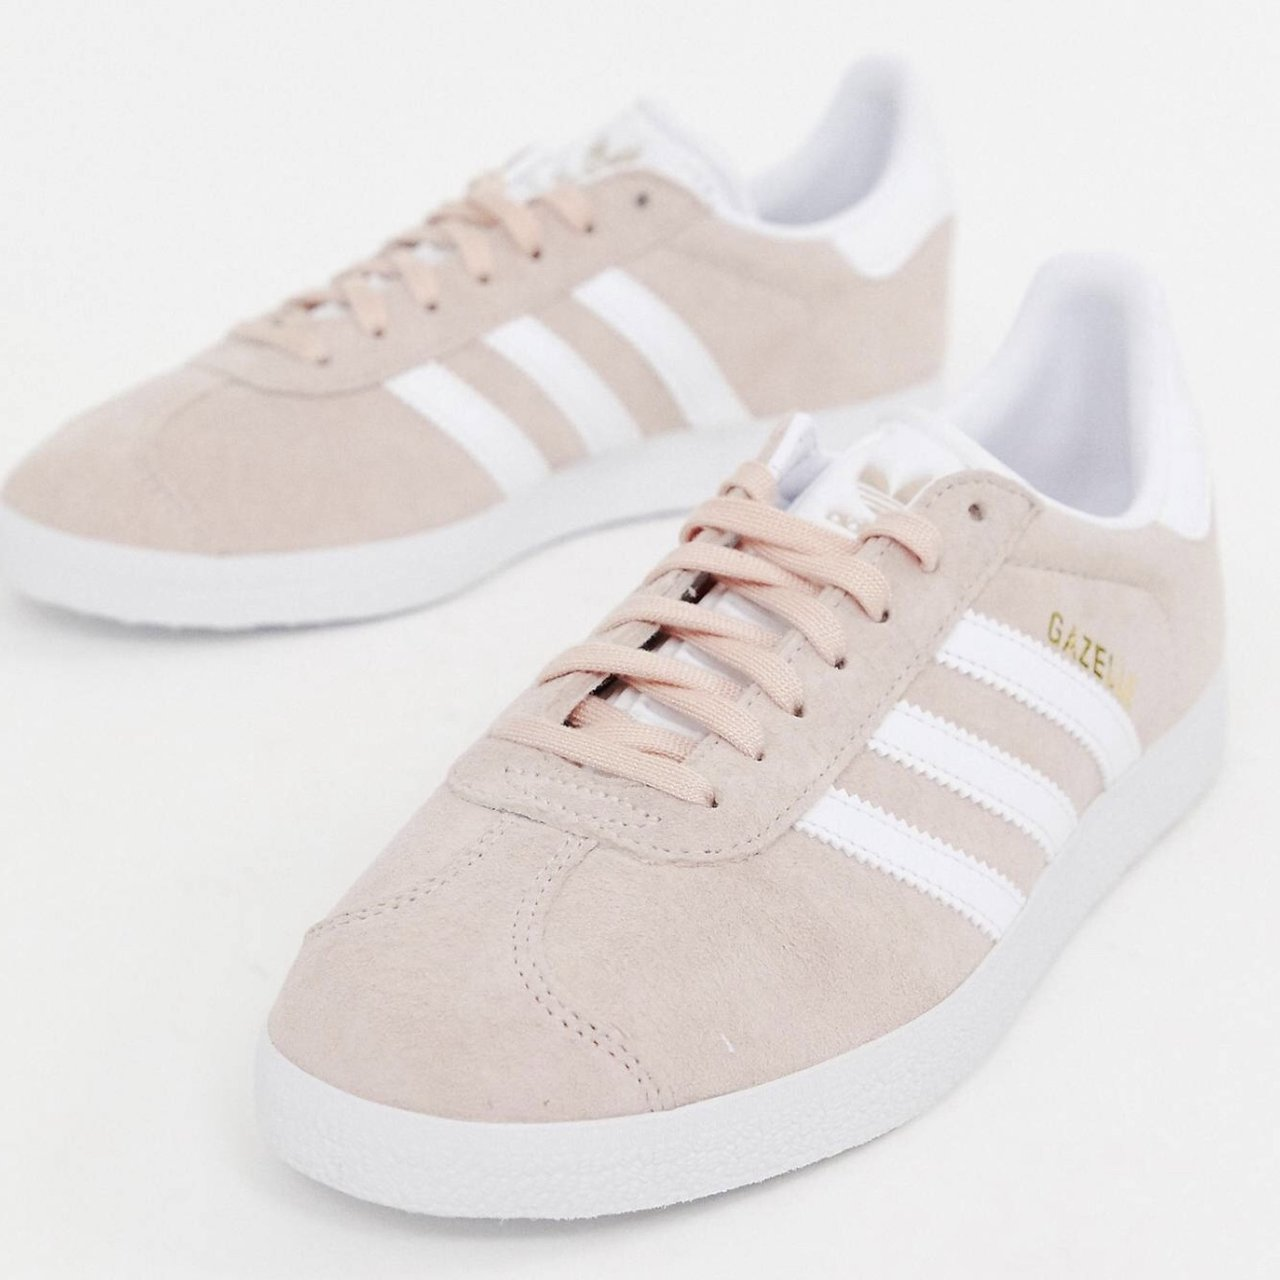 newest 7fcbe a14ea stephjaimes. last month. Houston, United States. Light pink adidas gazelle.